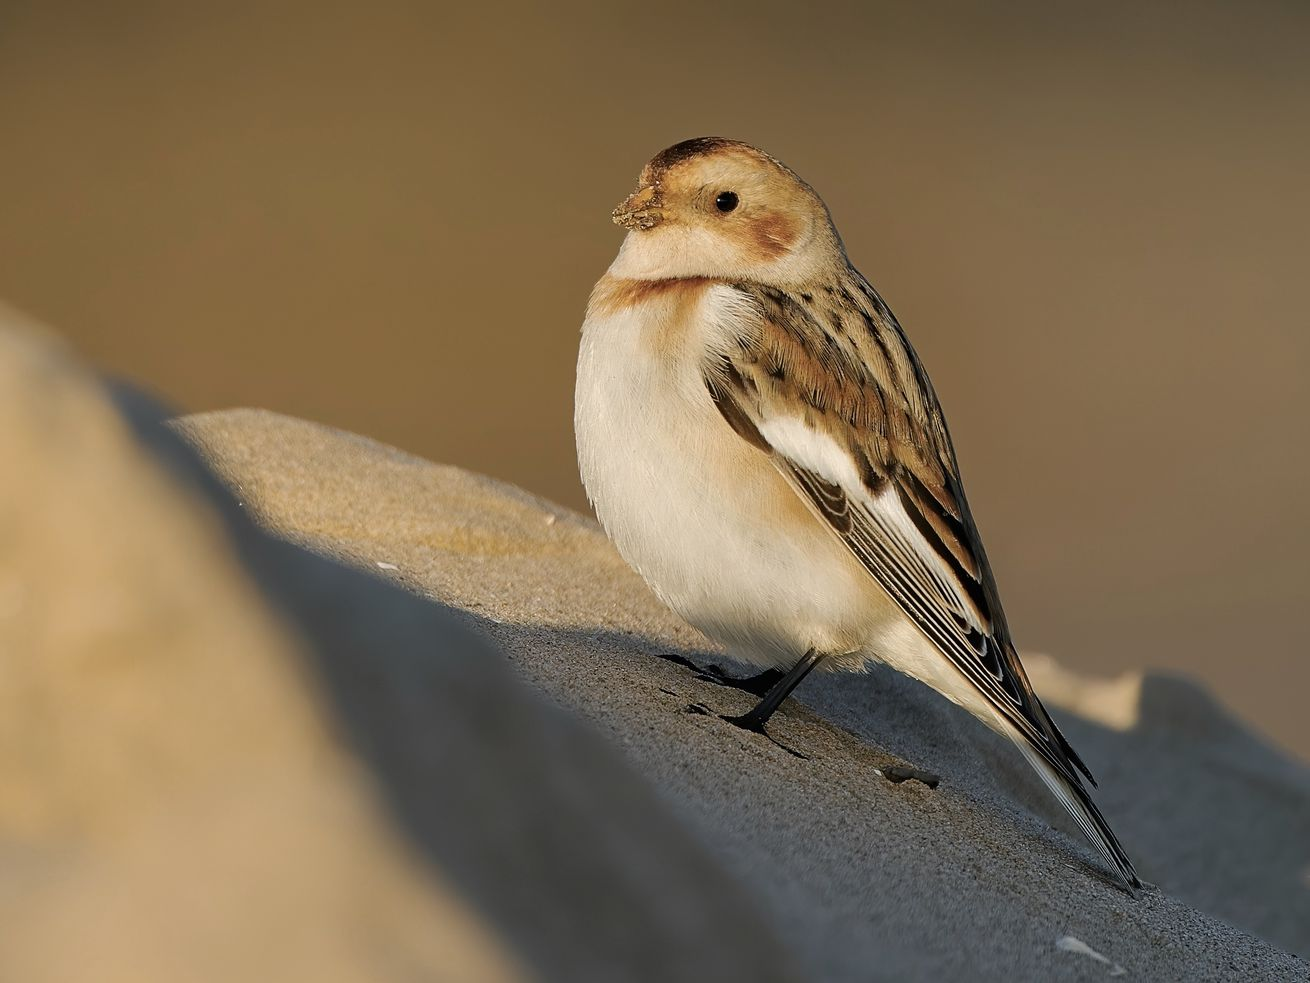 A snow bunting at Montrose Harbor this week. Credit: Emil Baumbach